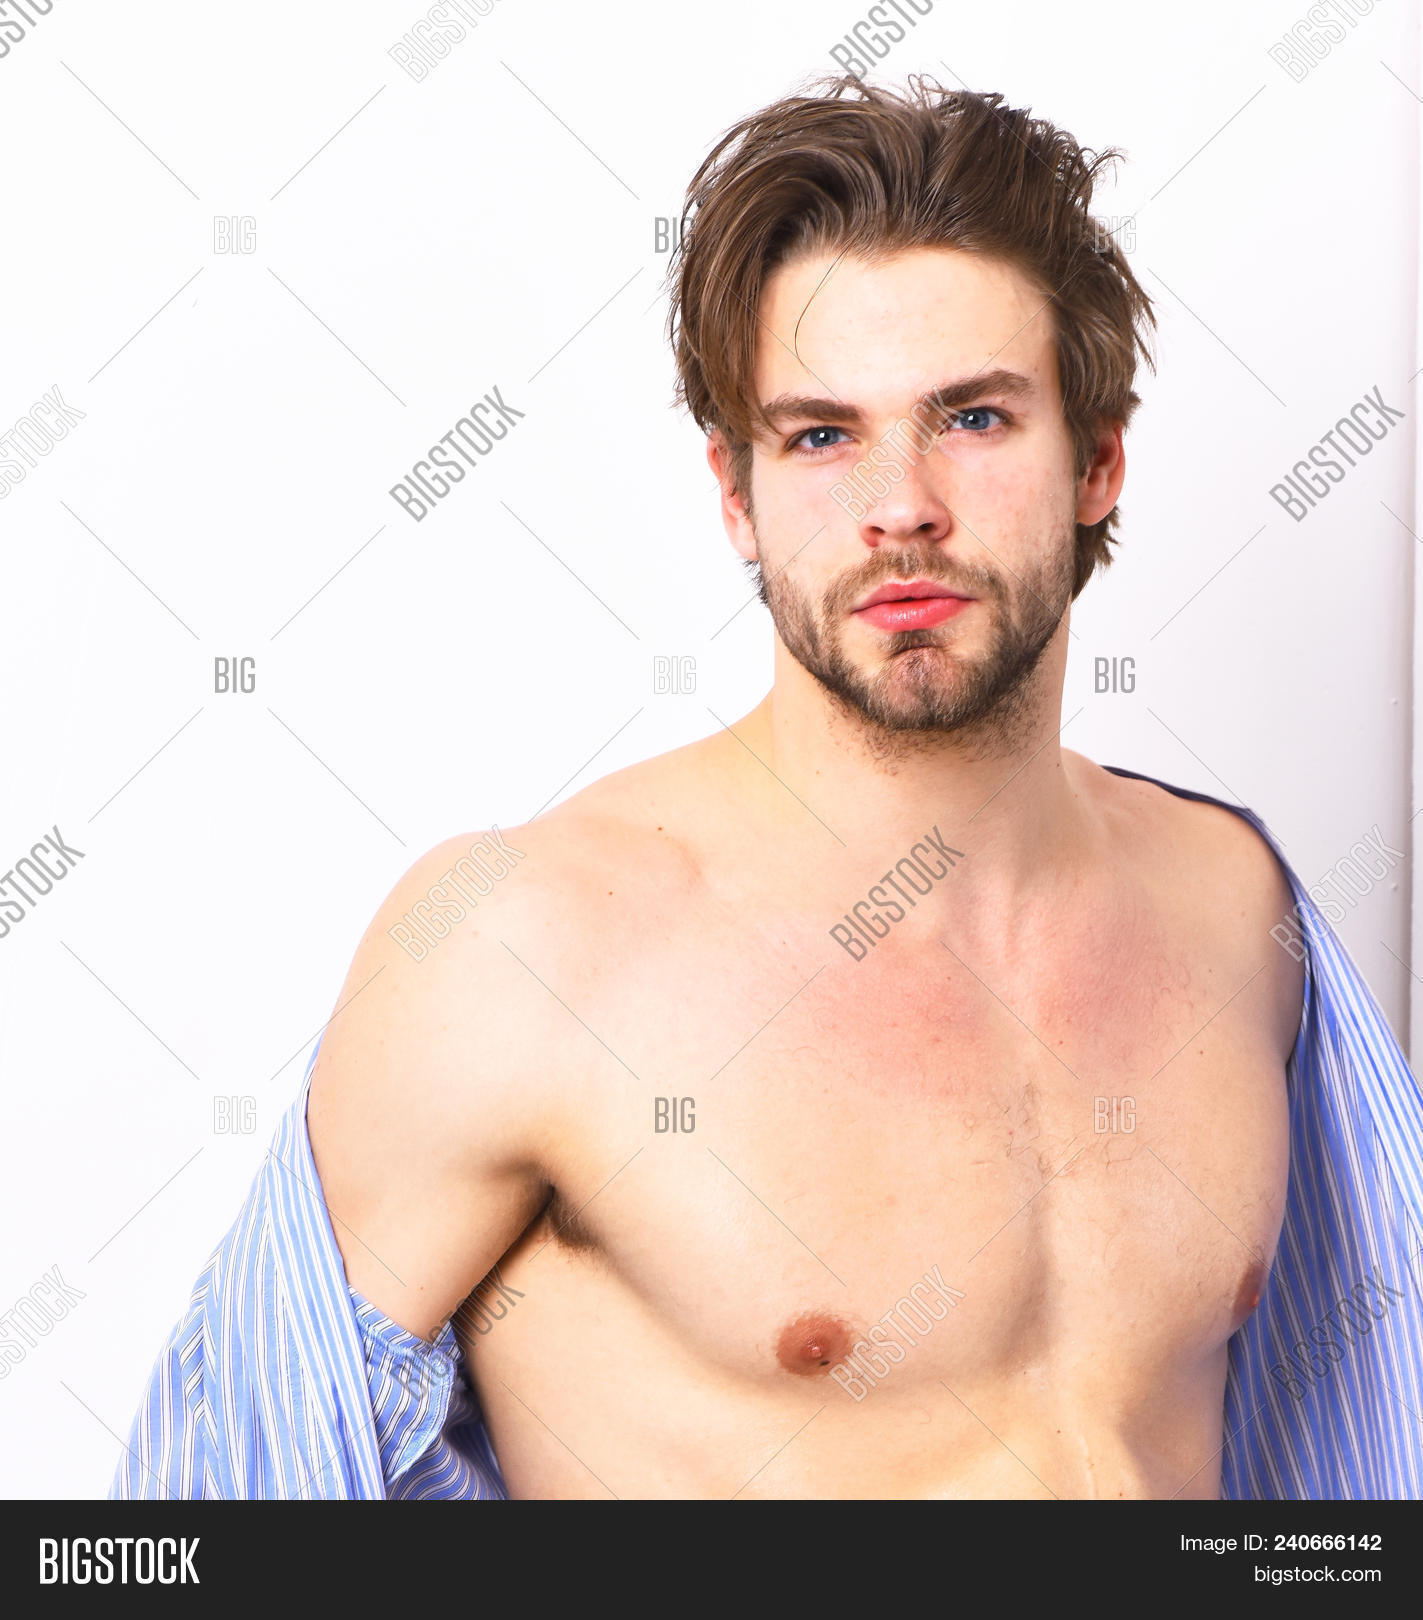 Fit Guy With Sexy Body In Home Or Bath Clothes. Masculinity, Spa And Morning